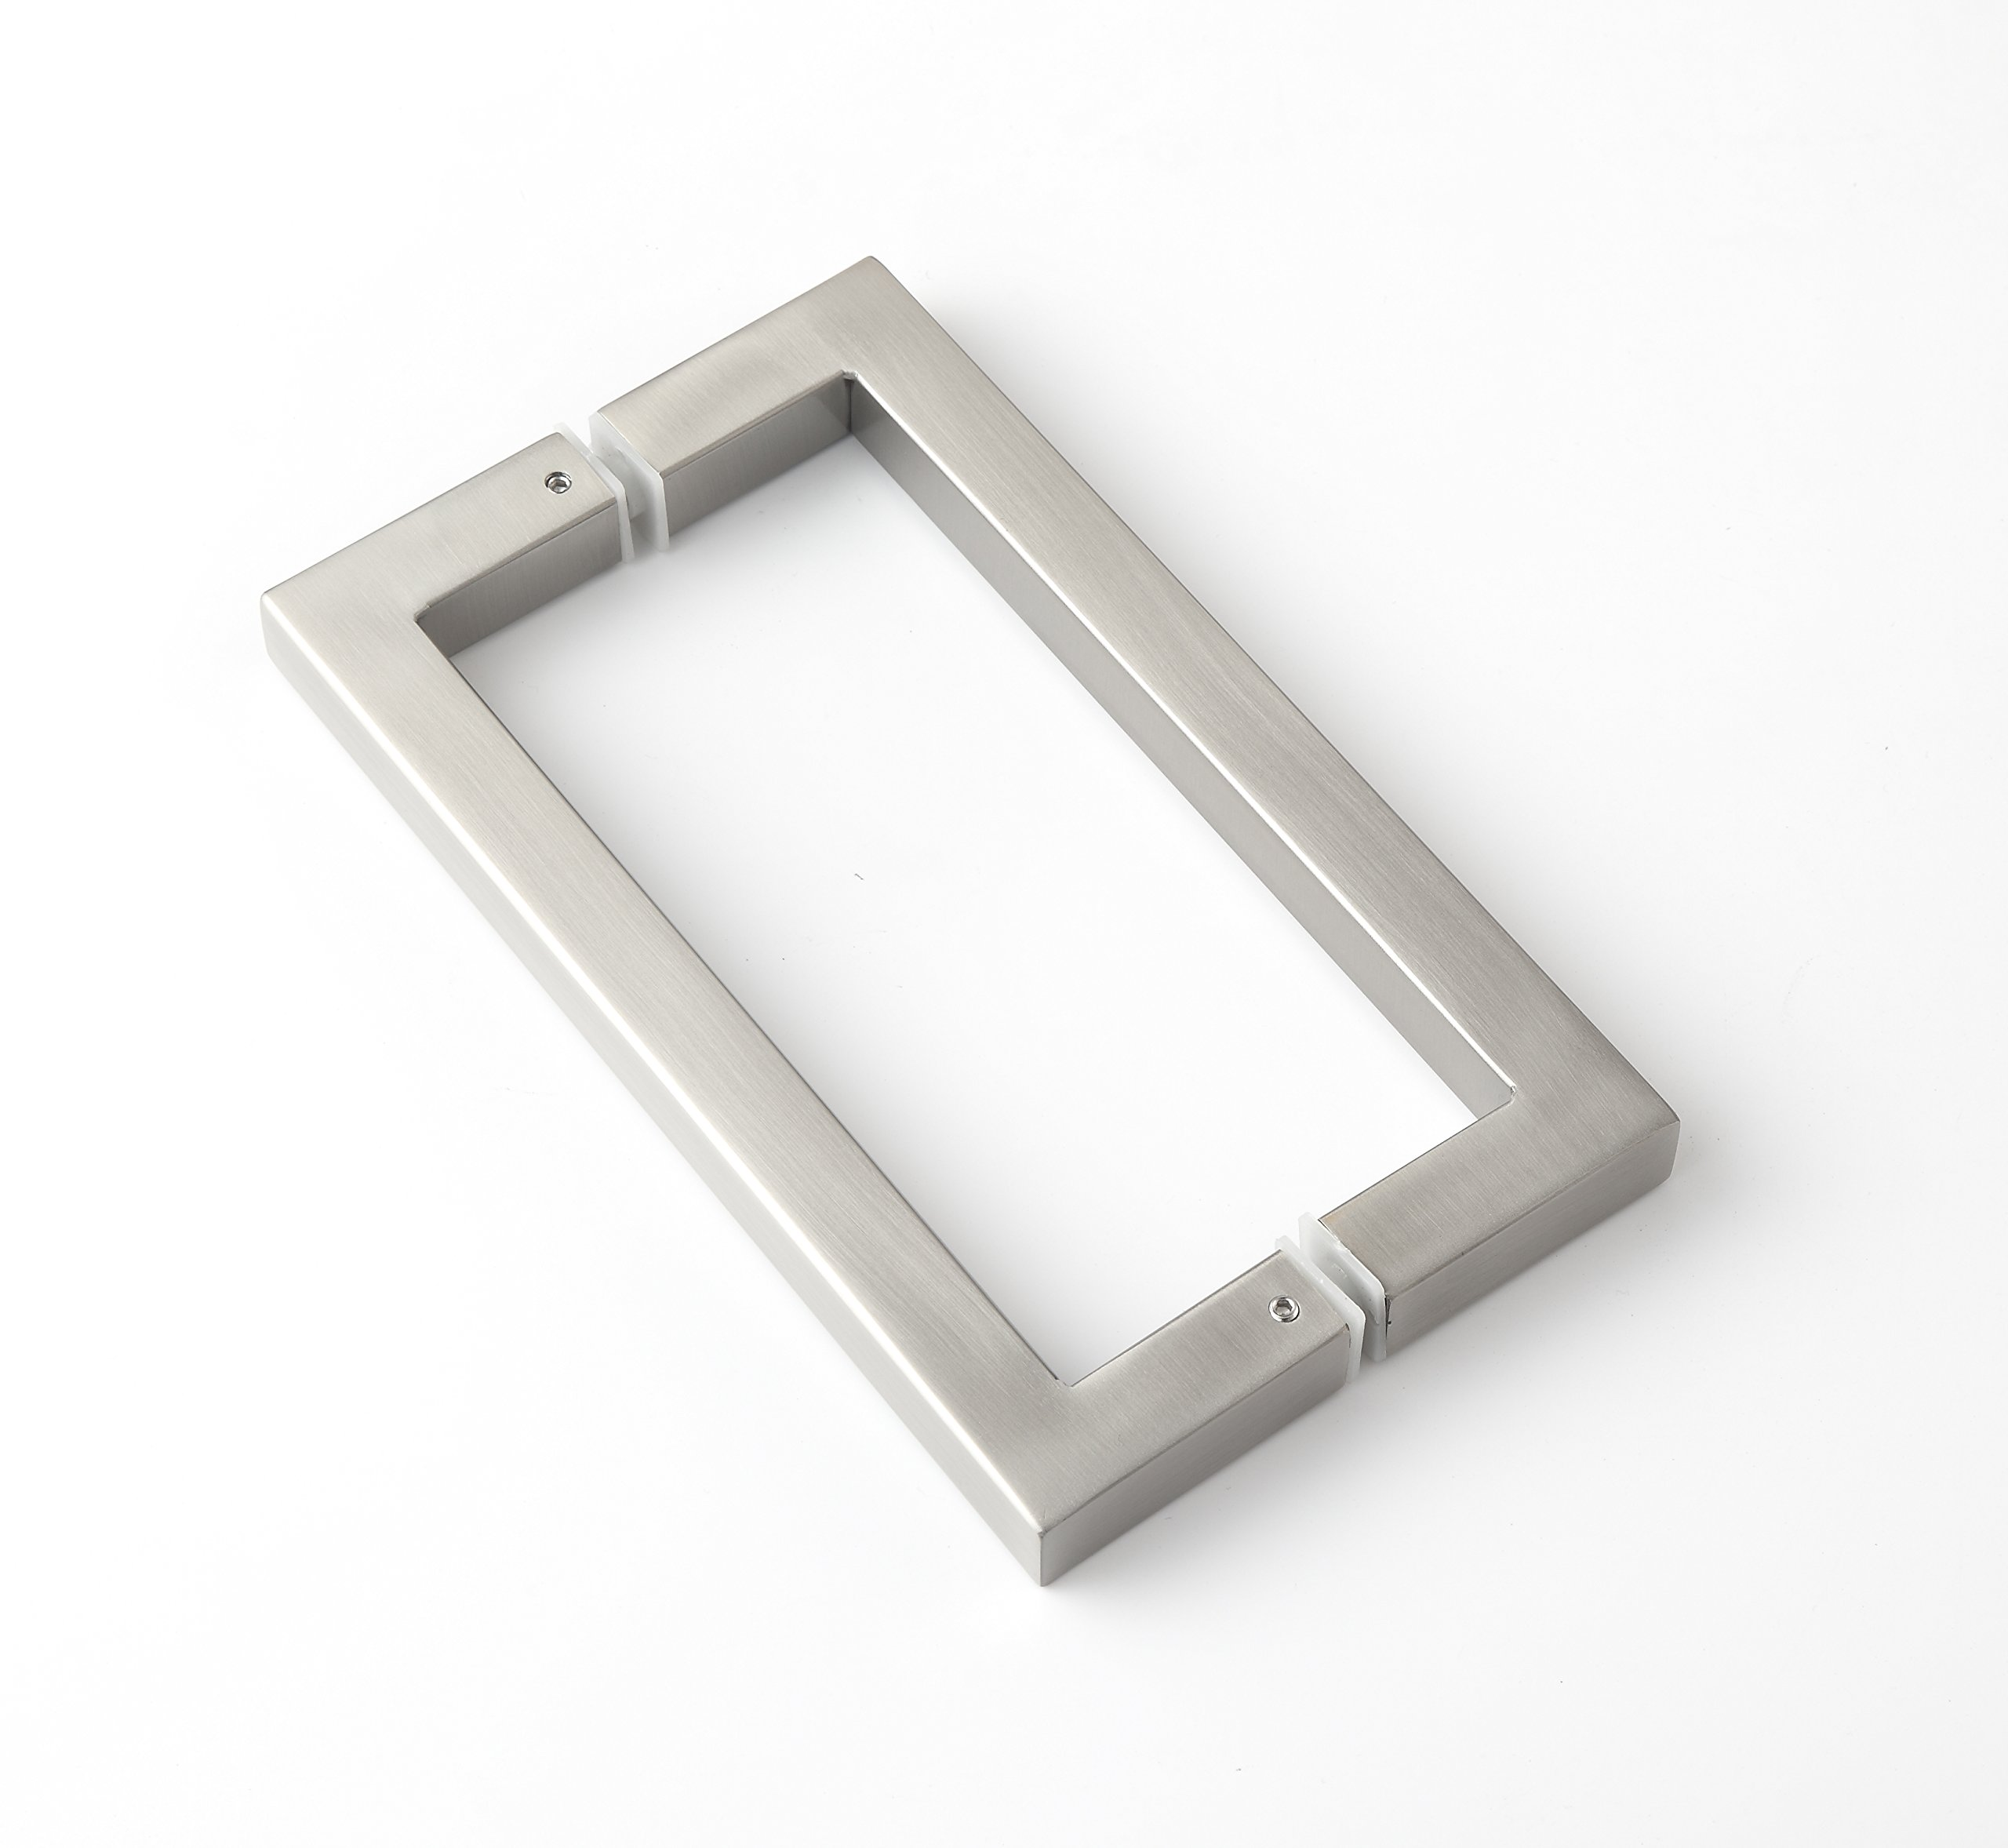 Rembrandt - Square 12'' Modern & Contemporary Double Shower Pull Stainless Steel for Entrance/Entry/Shower/Glass/Shop/Store, Interior/Exterior Barn & Gates - Brushed Nickel